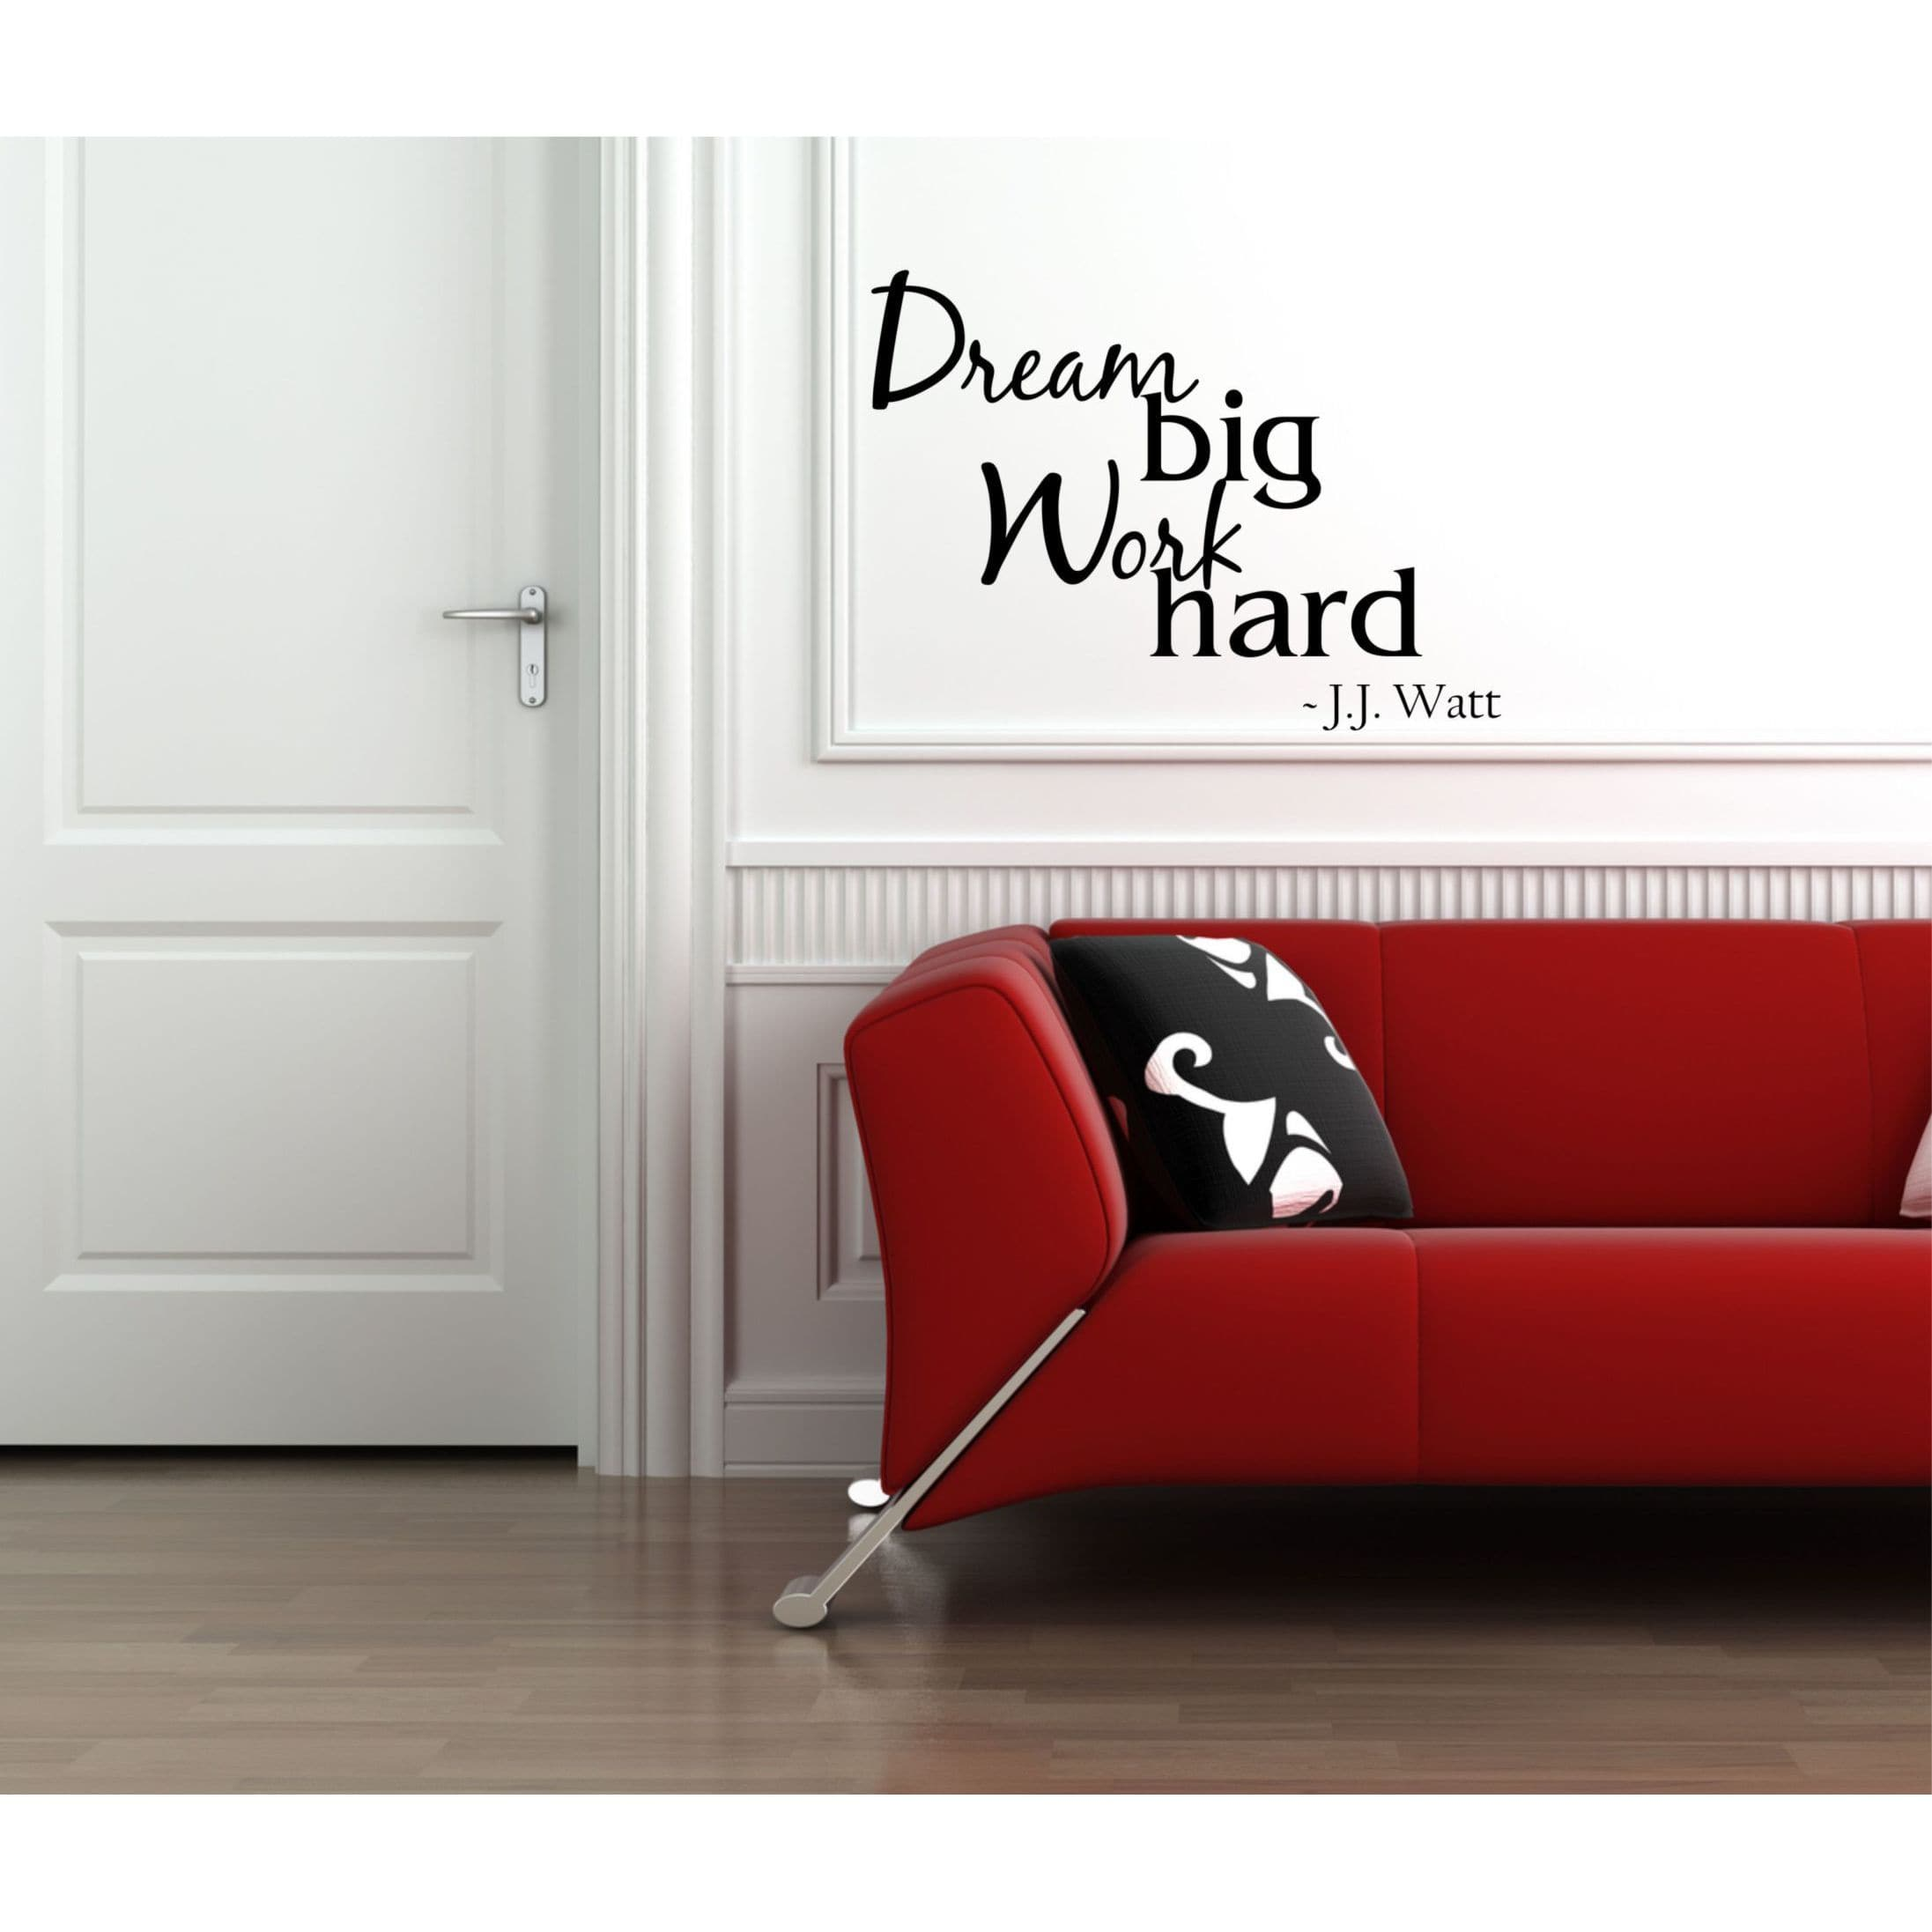 Everything Vinyl Decor J.J. Watt 'Dream Big, Work Hard' Inspirational Vinyl Wall Art